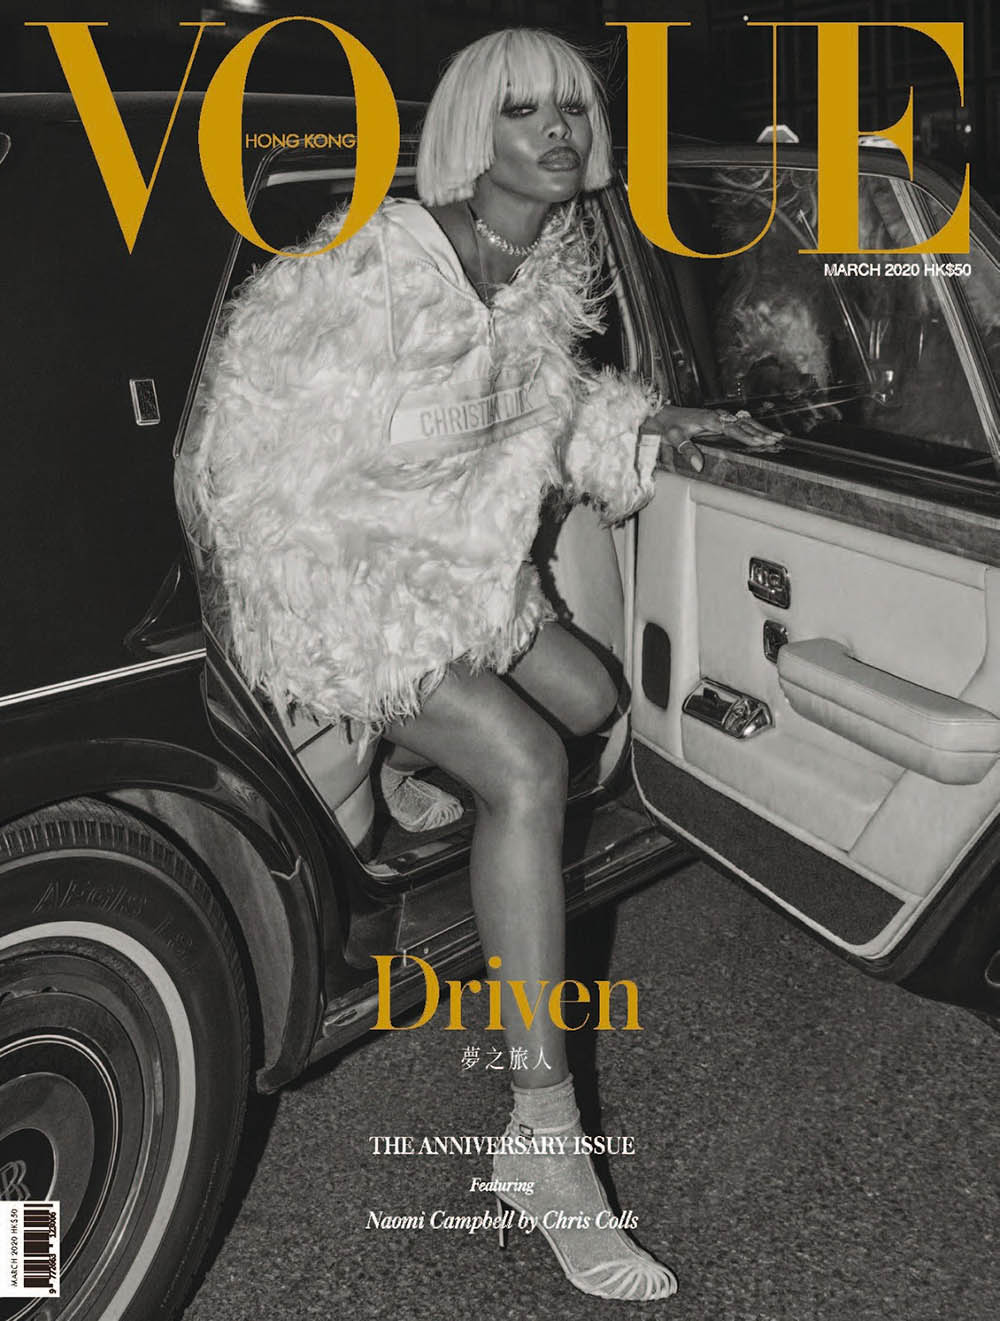 Naomi Campbell covers Vogue Hong Kong March 2020 by Chris Colls